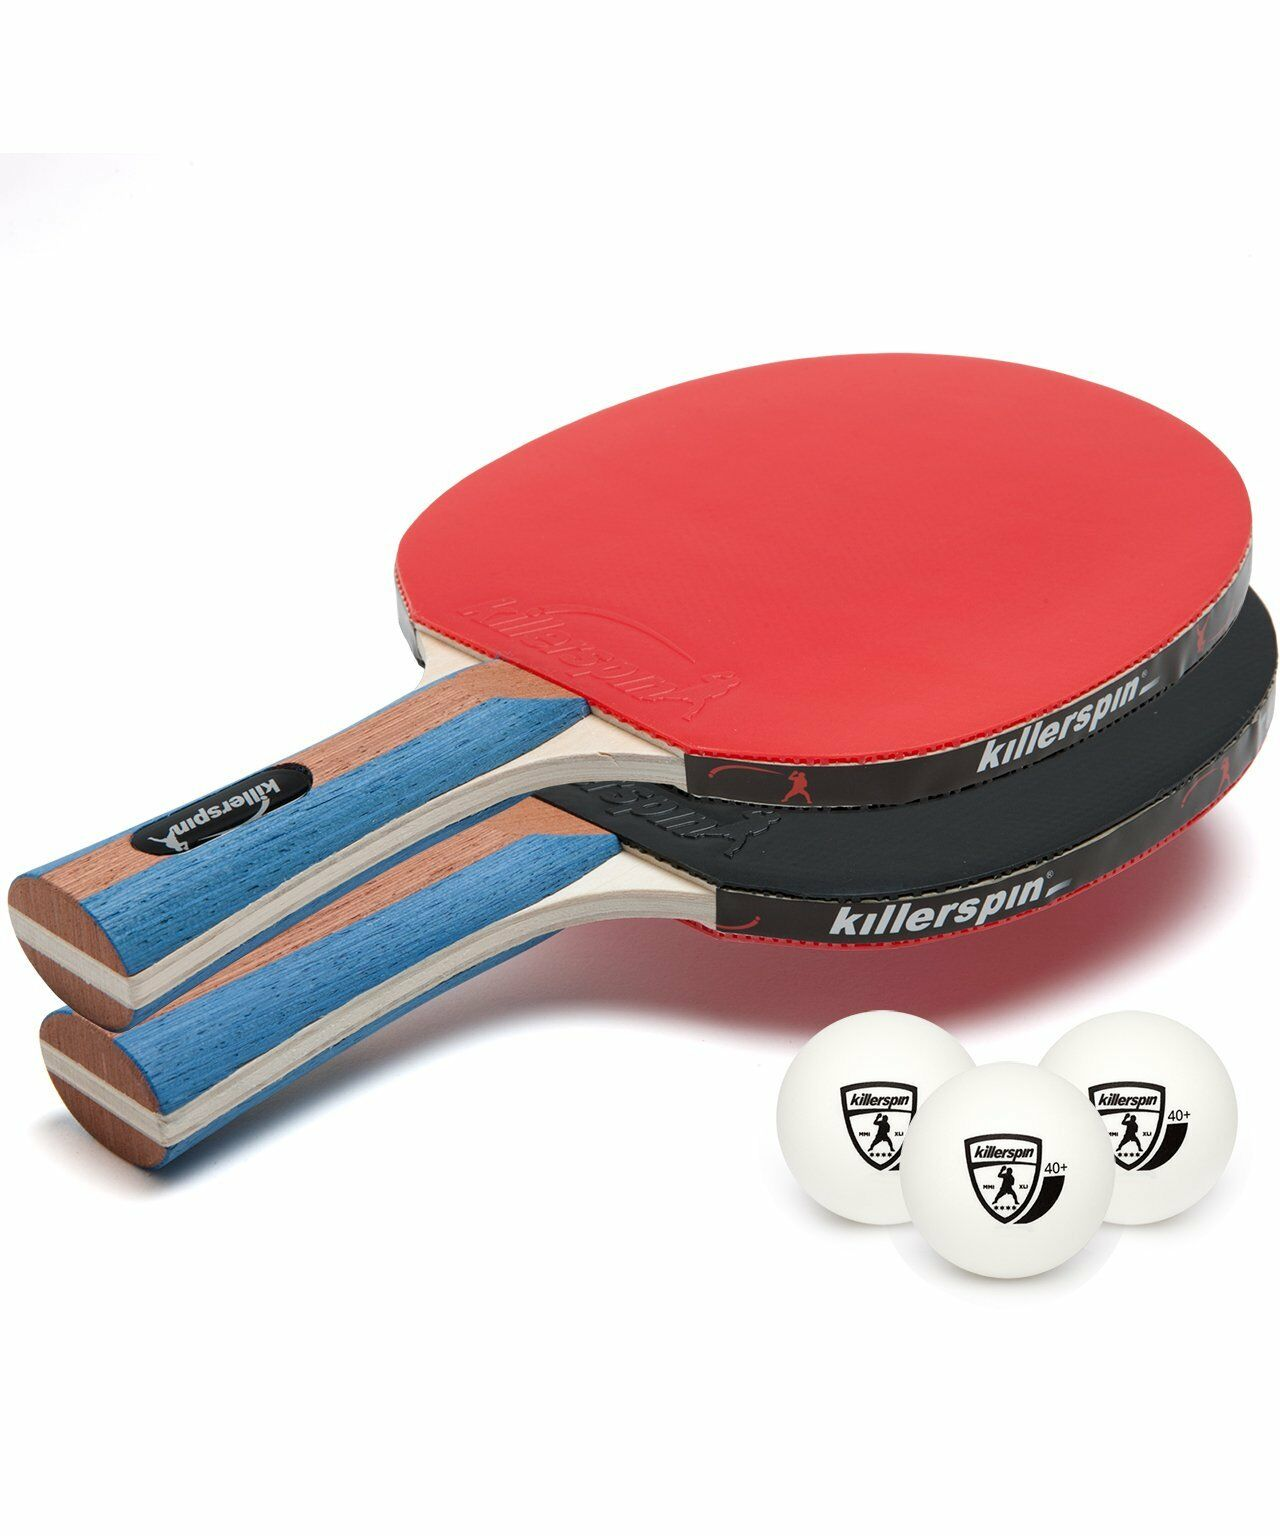 NEW Killerspin 112-01 JET SET 2 Premium Table Tennis Paddle Set with Balls